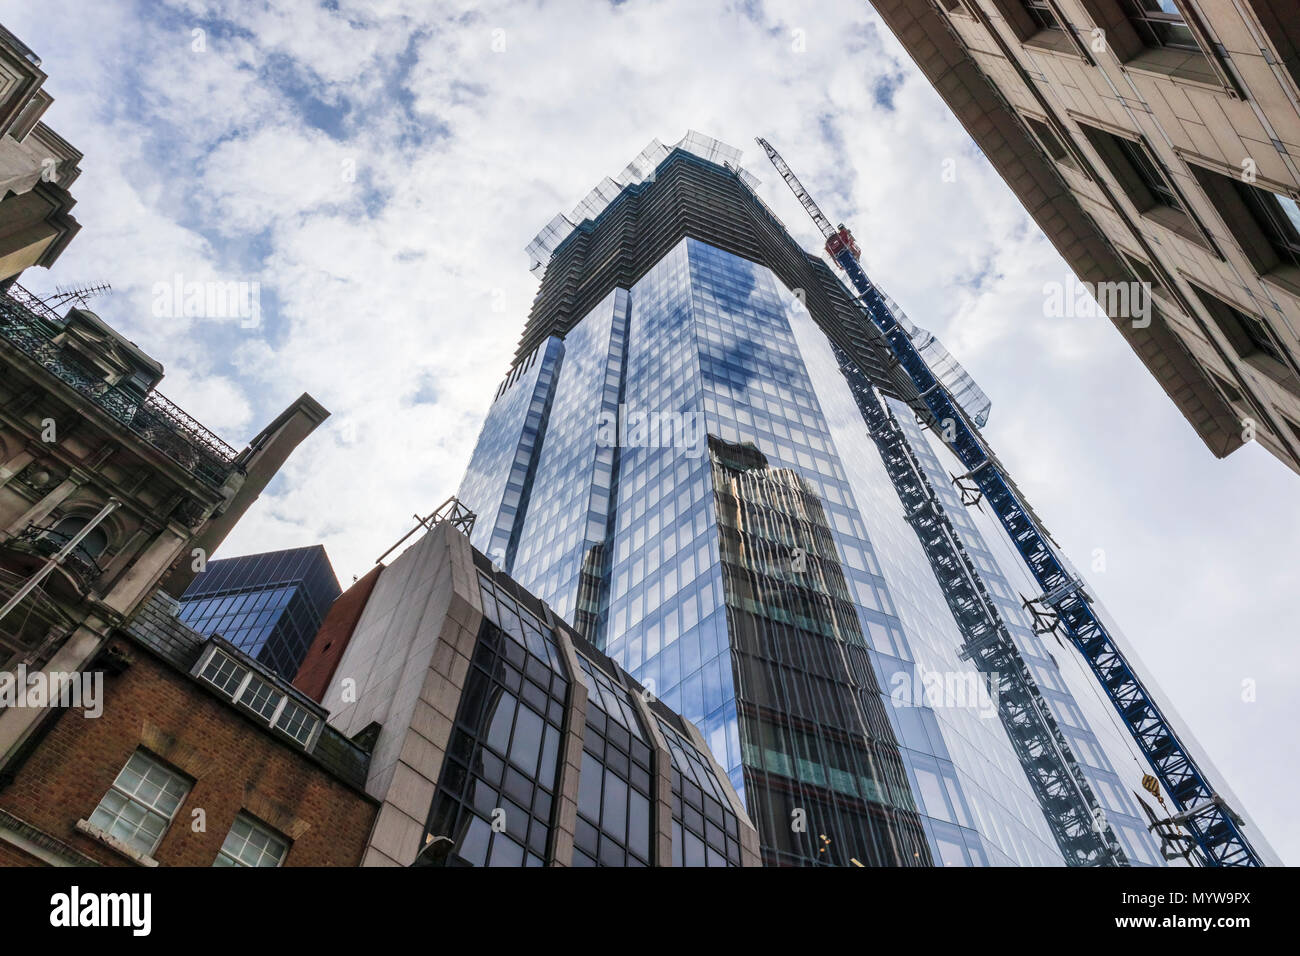 Partially completed skyscraper office tower 22 Bishopsgate in the heart of the financial district of the City of London EC2 reflecting Tower 42 Stock Photo